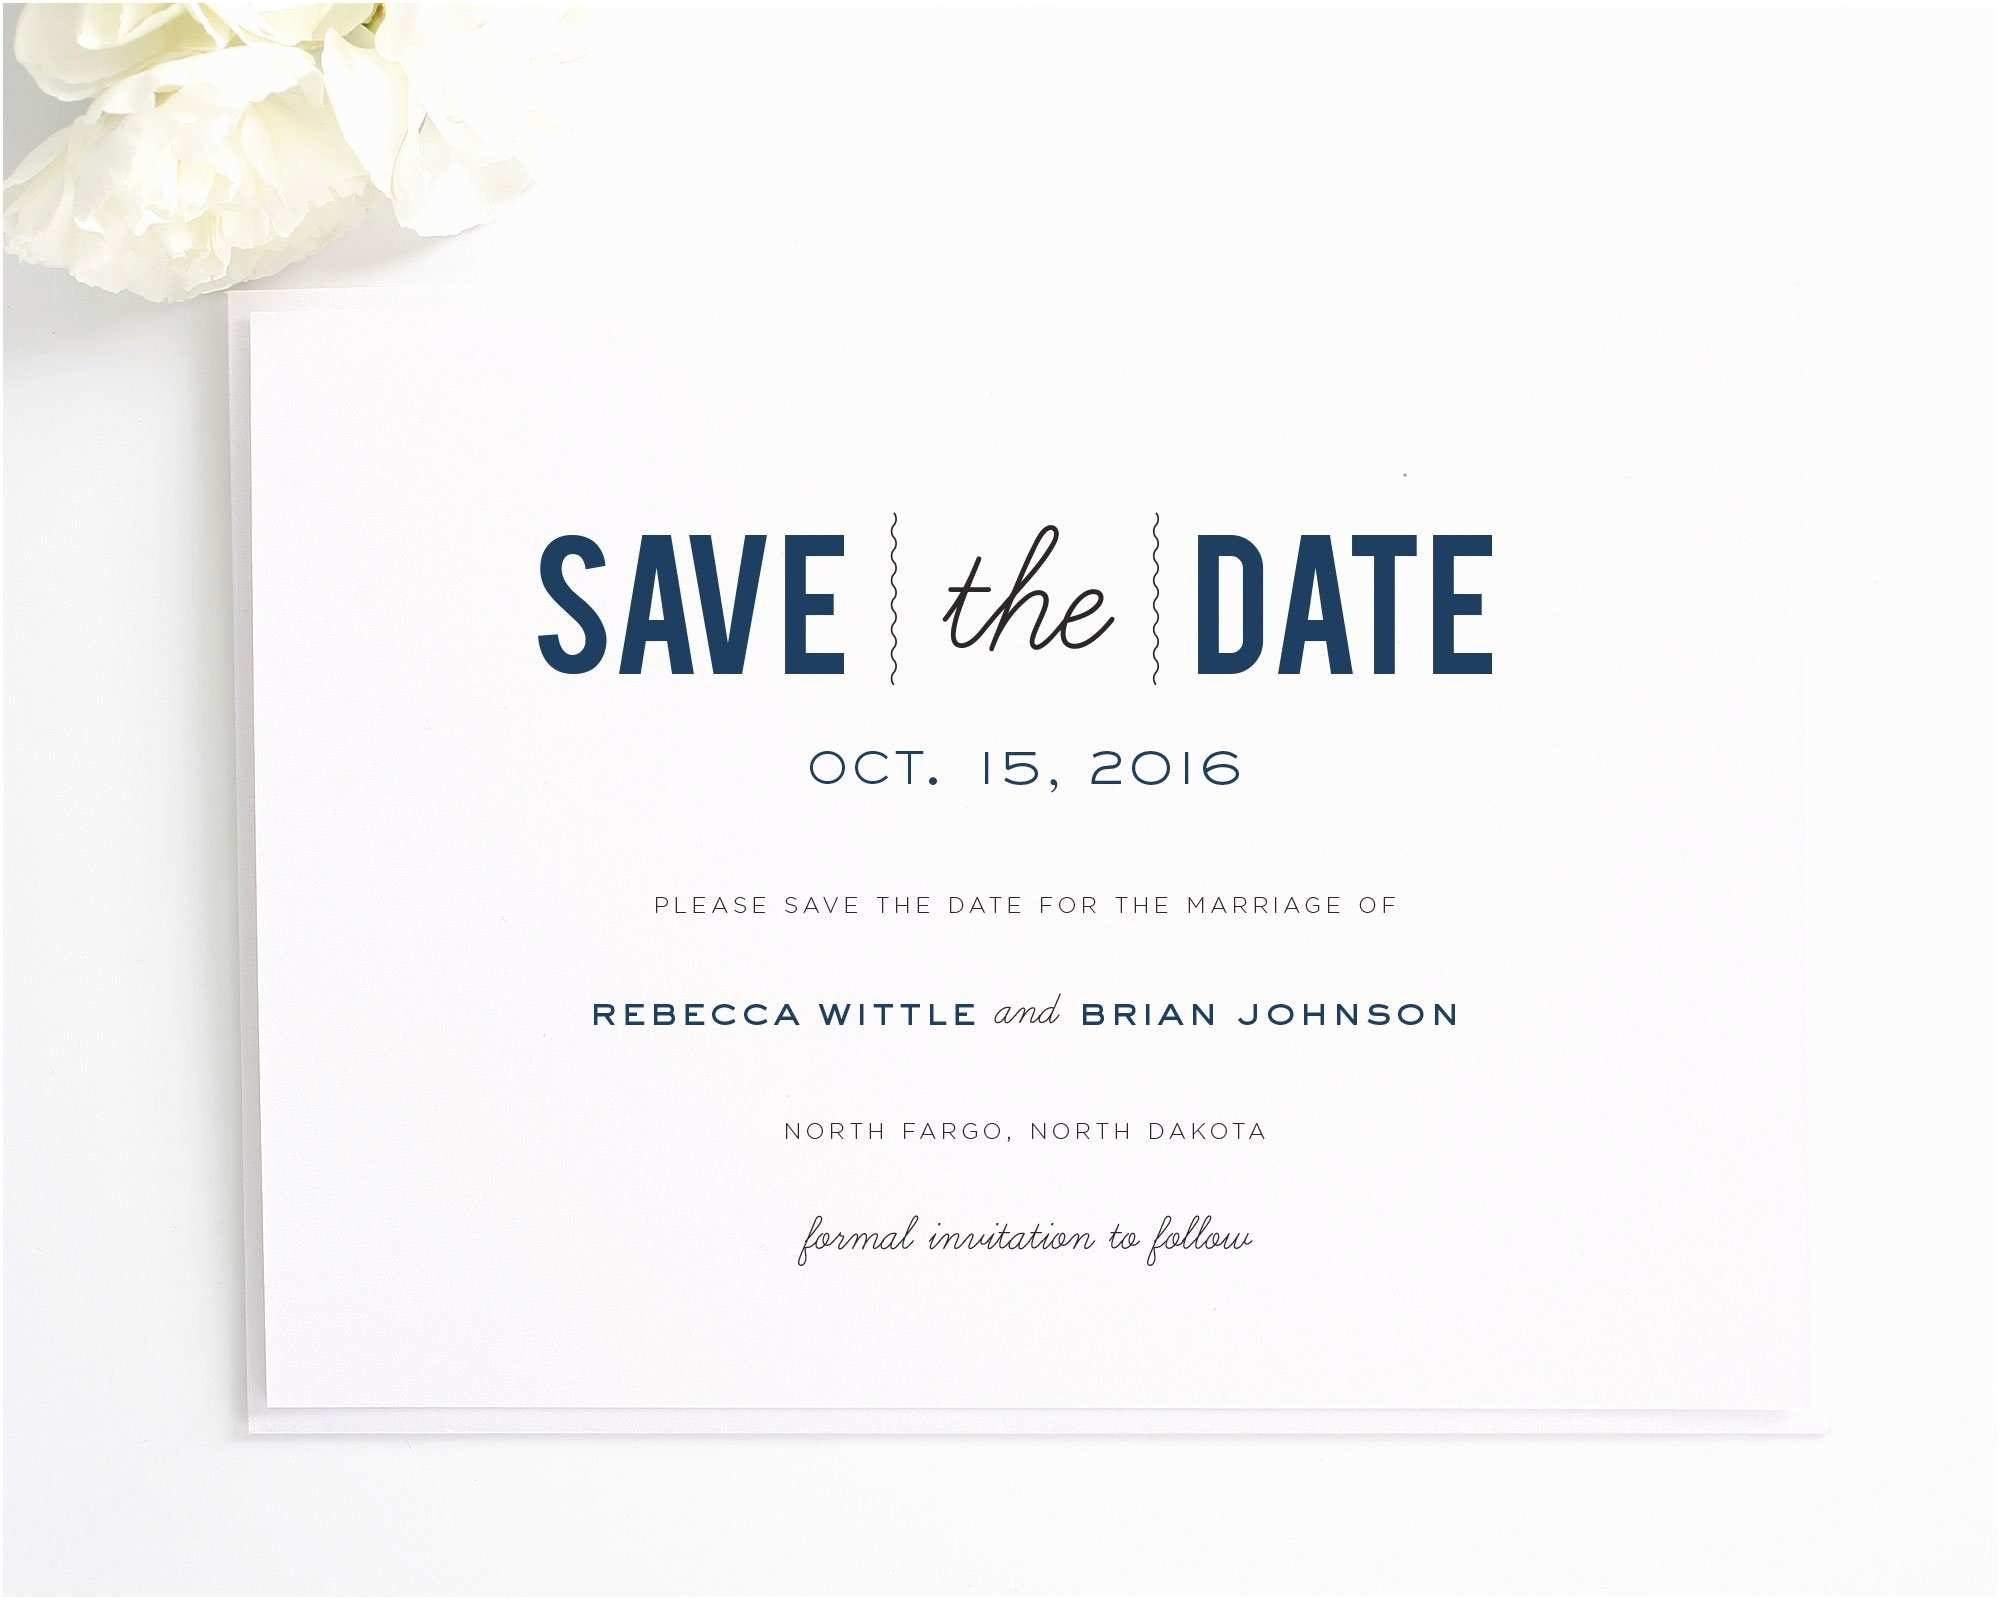 Save the Date Wedding Invitations Date Monogram Save the Date Cards Save the Date Cards by